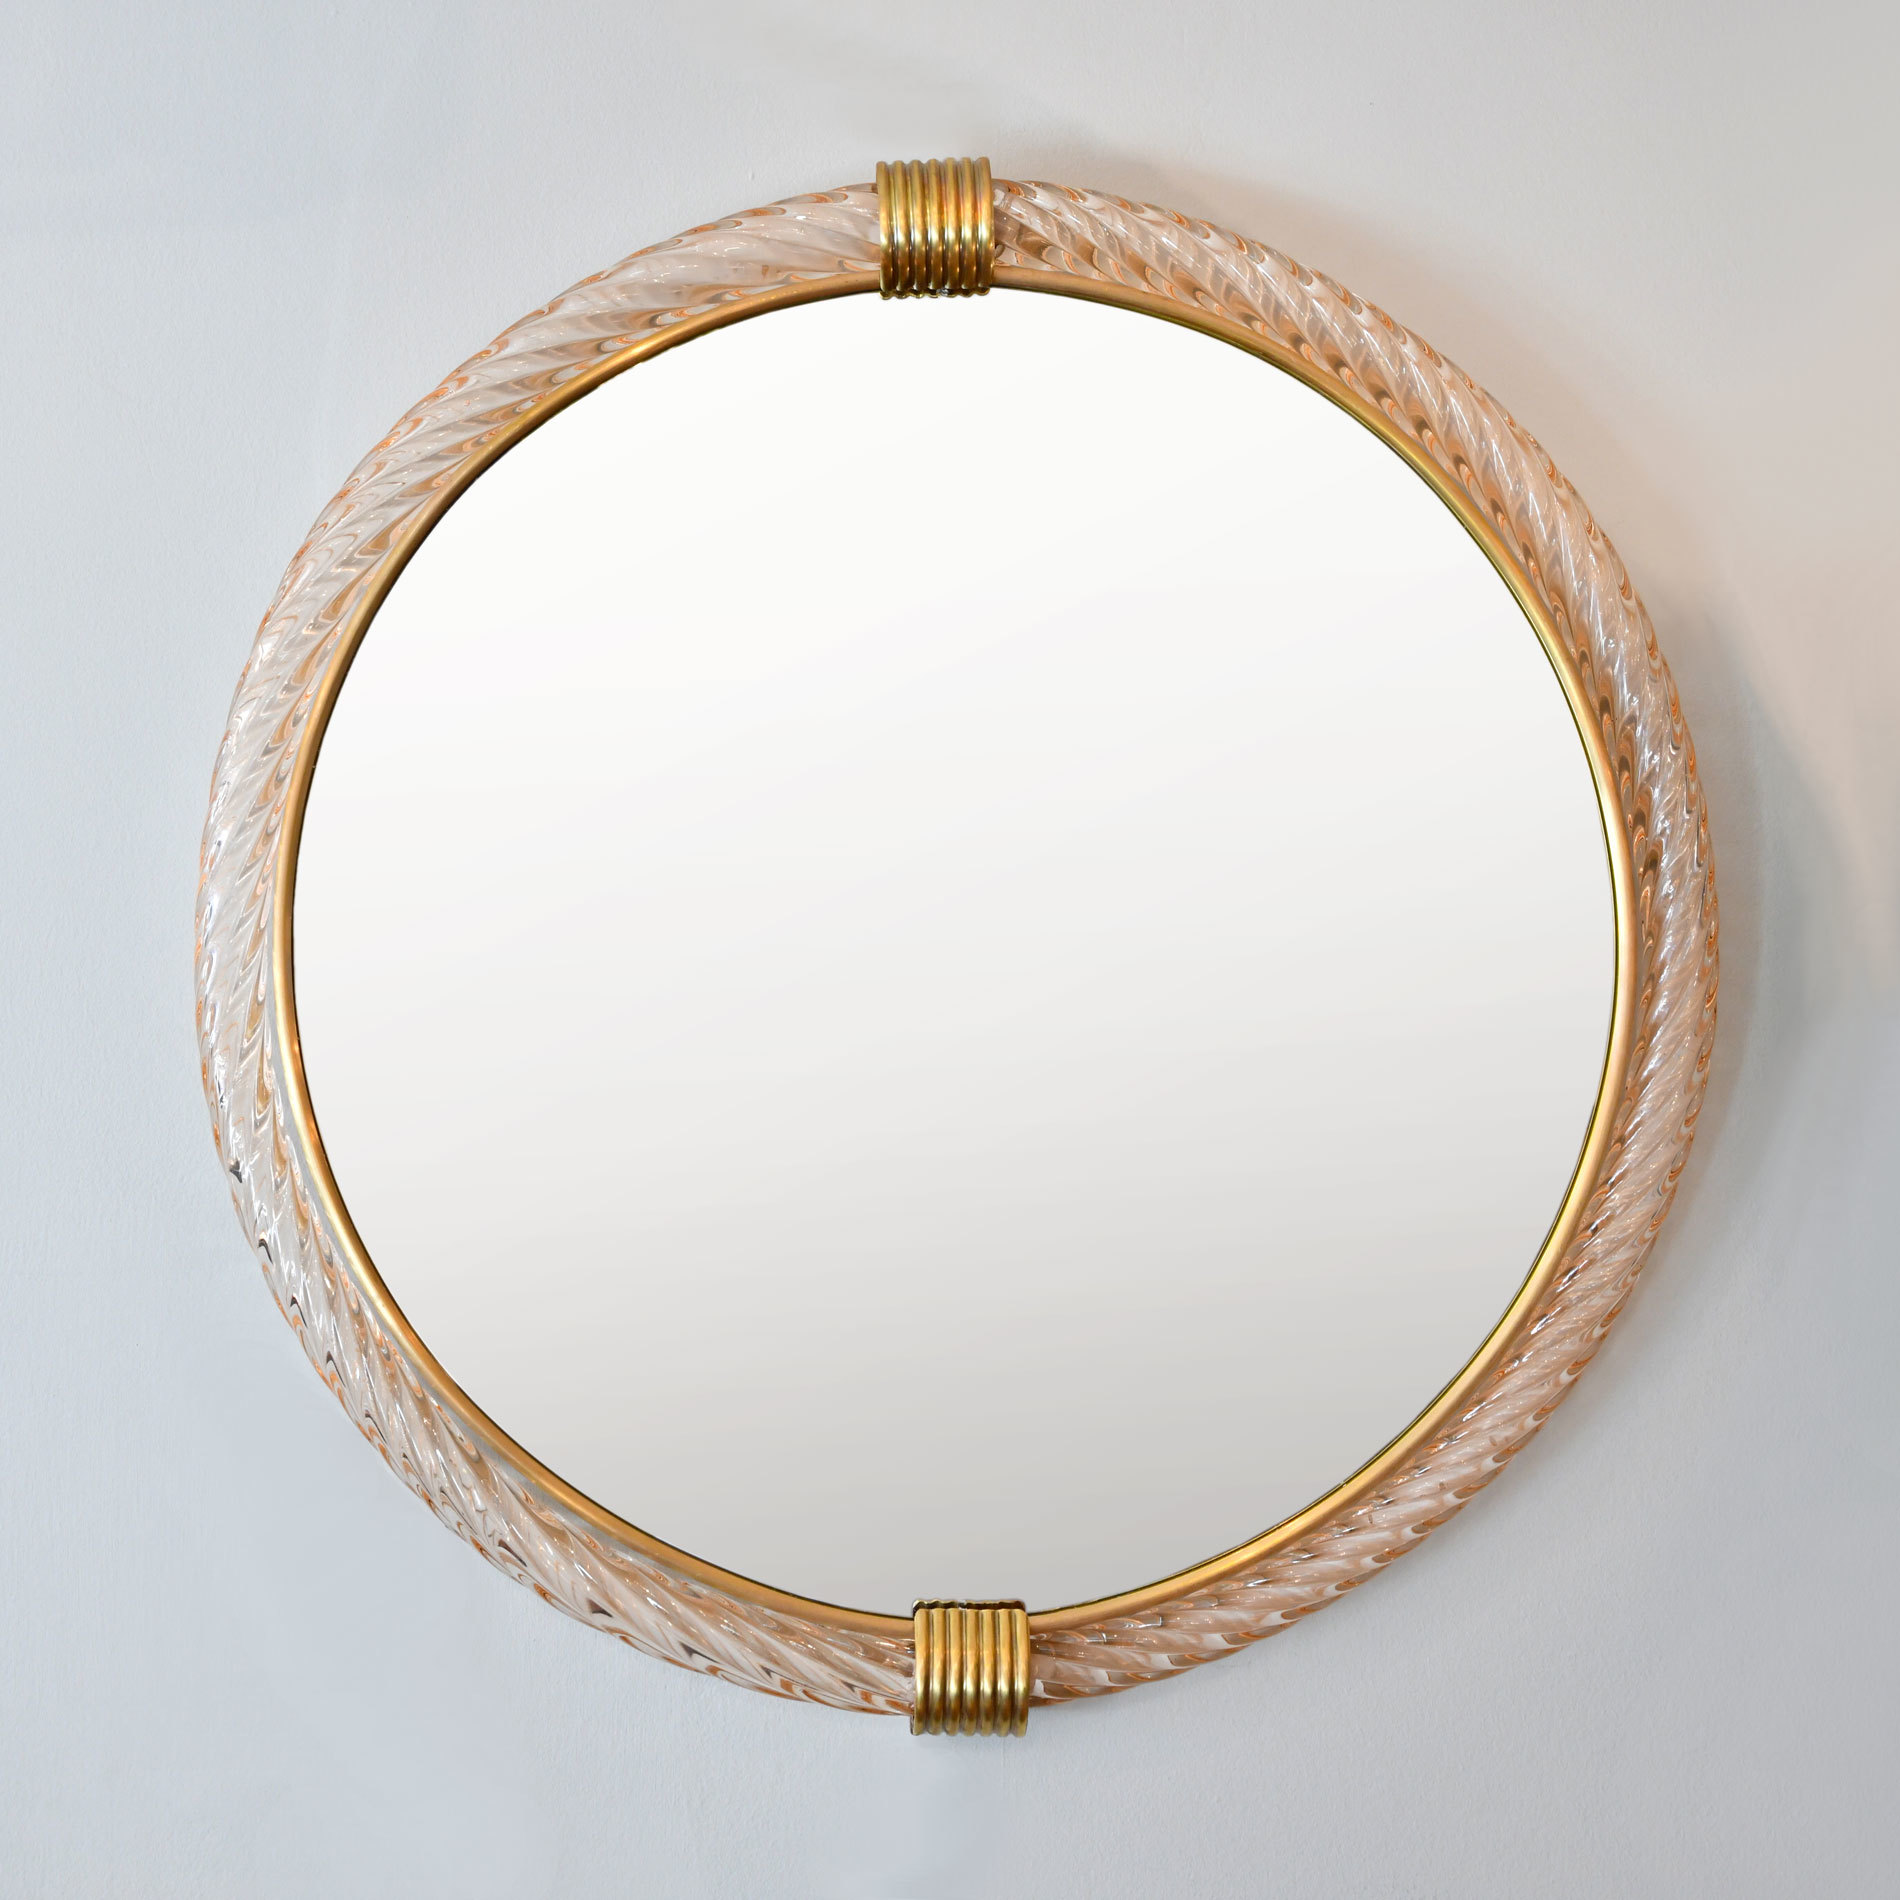 The image for Firenze Mirror – Circular 01